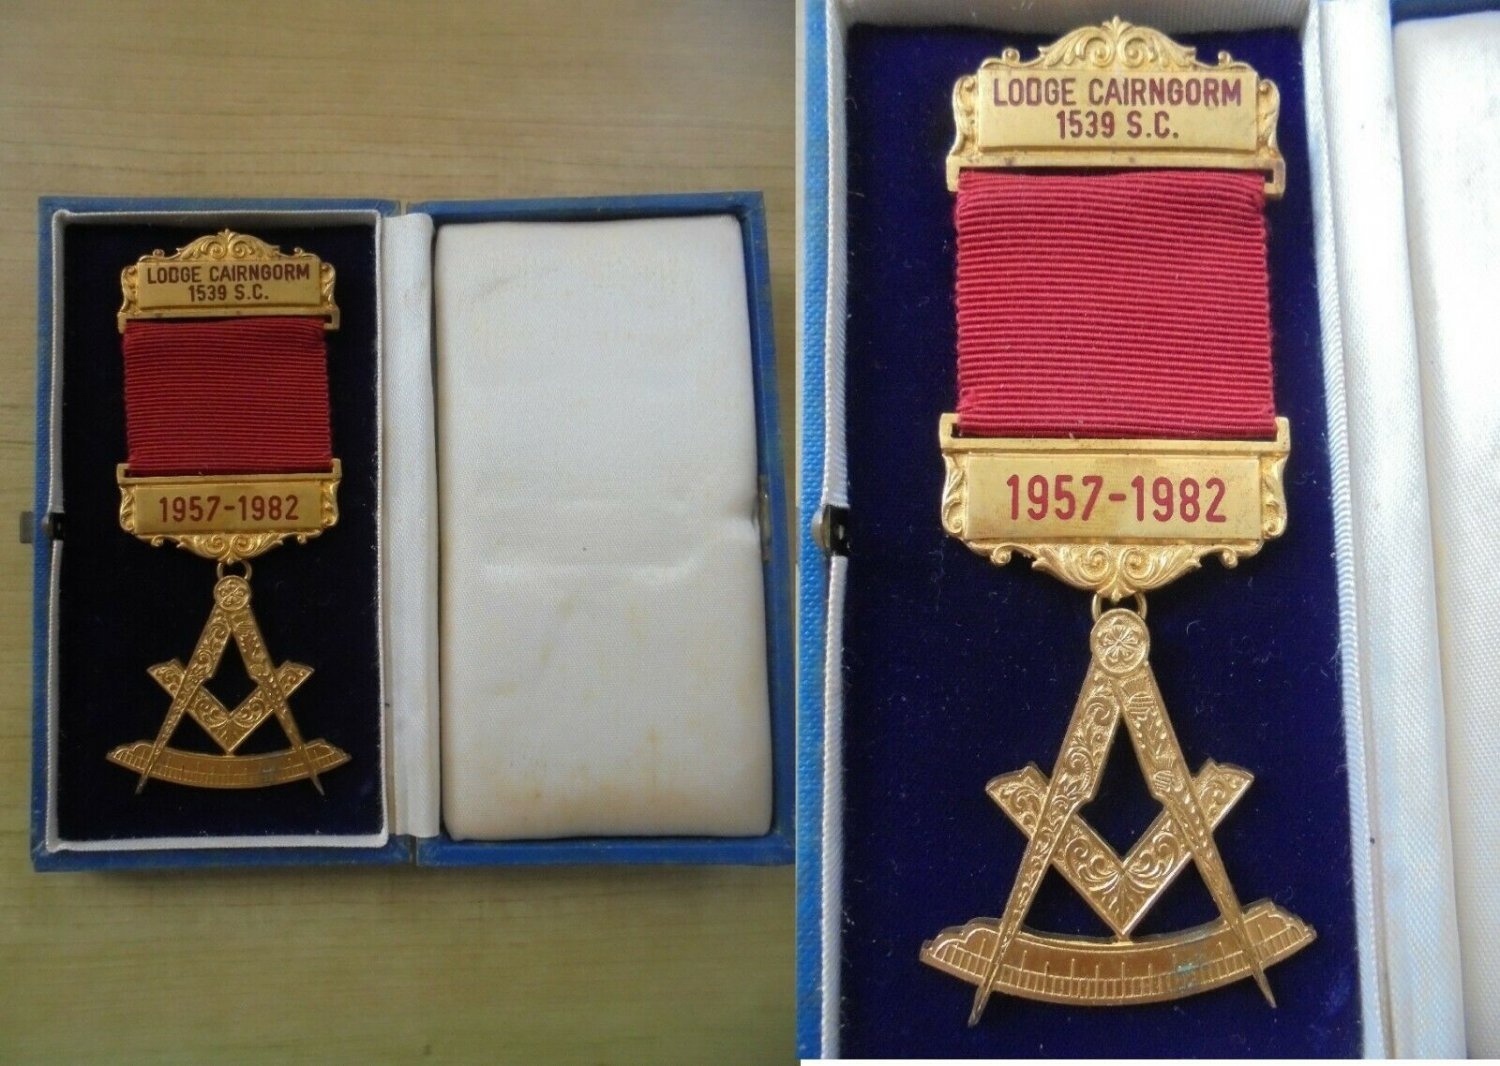 MASONIC PIN 25th Anniversary Lodge Freemasonry CAIRNGORM Scottish Scotland Original 1982 in box